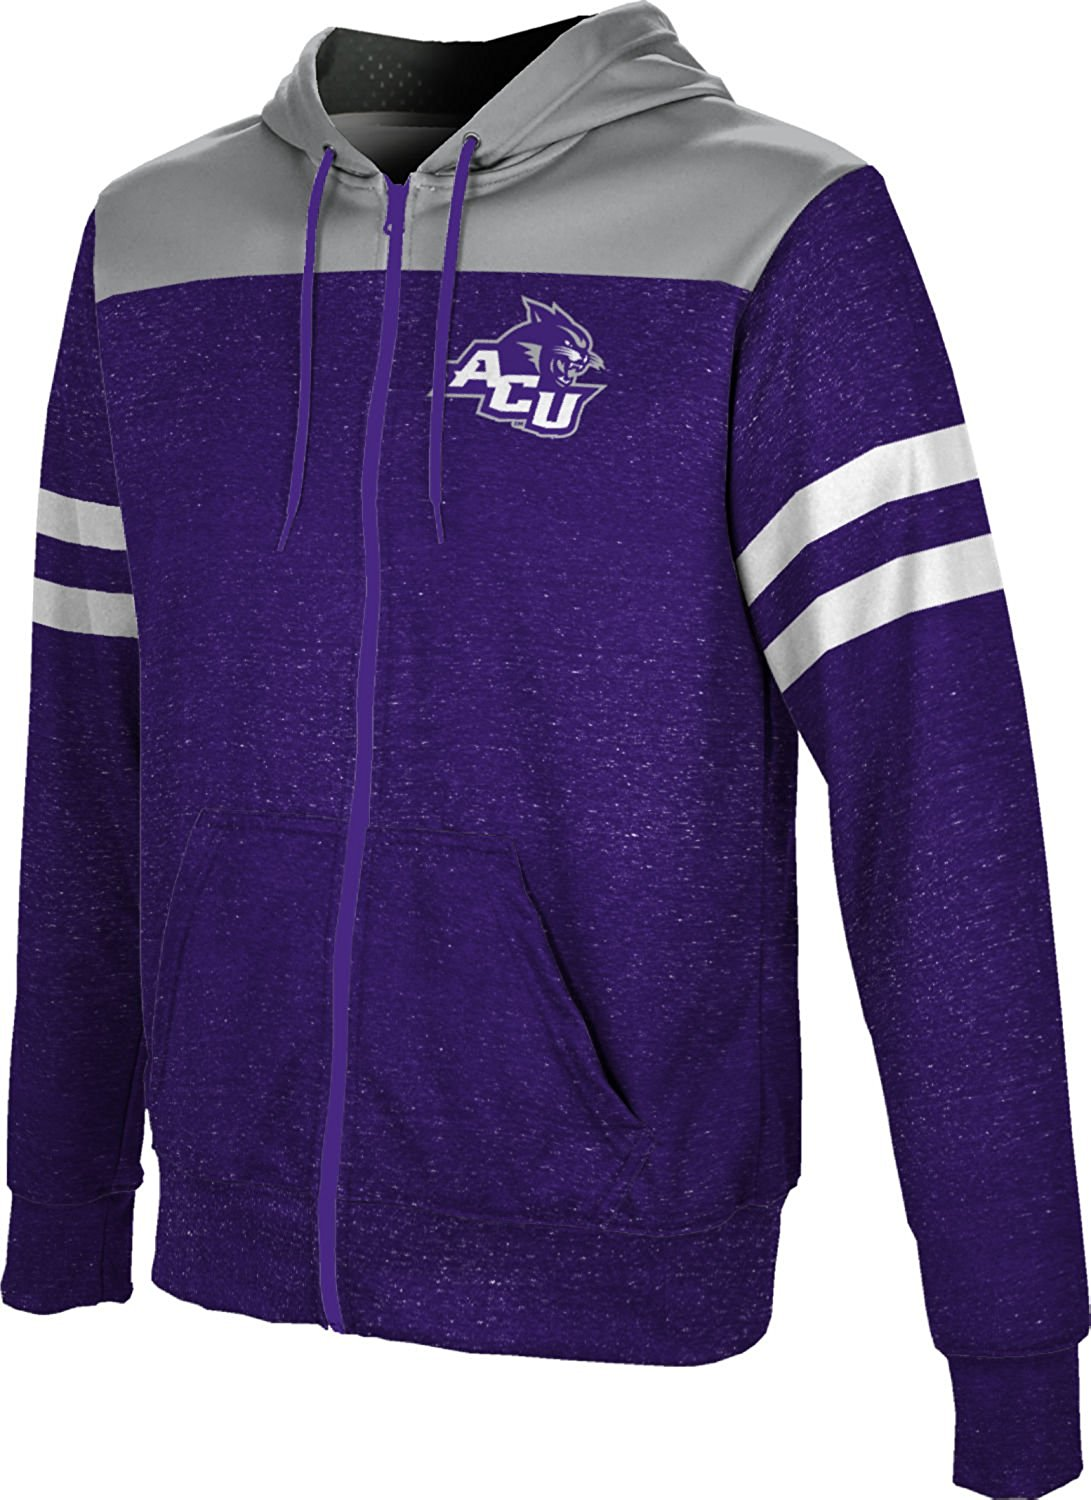 ProSphere Abilene Christian University Boys' Fullzip Hoodie - Gameday